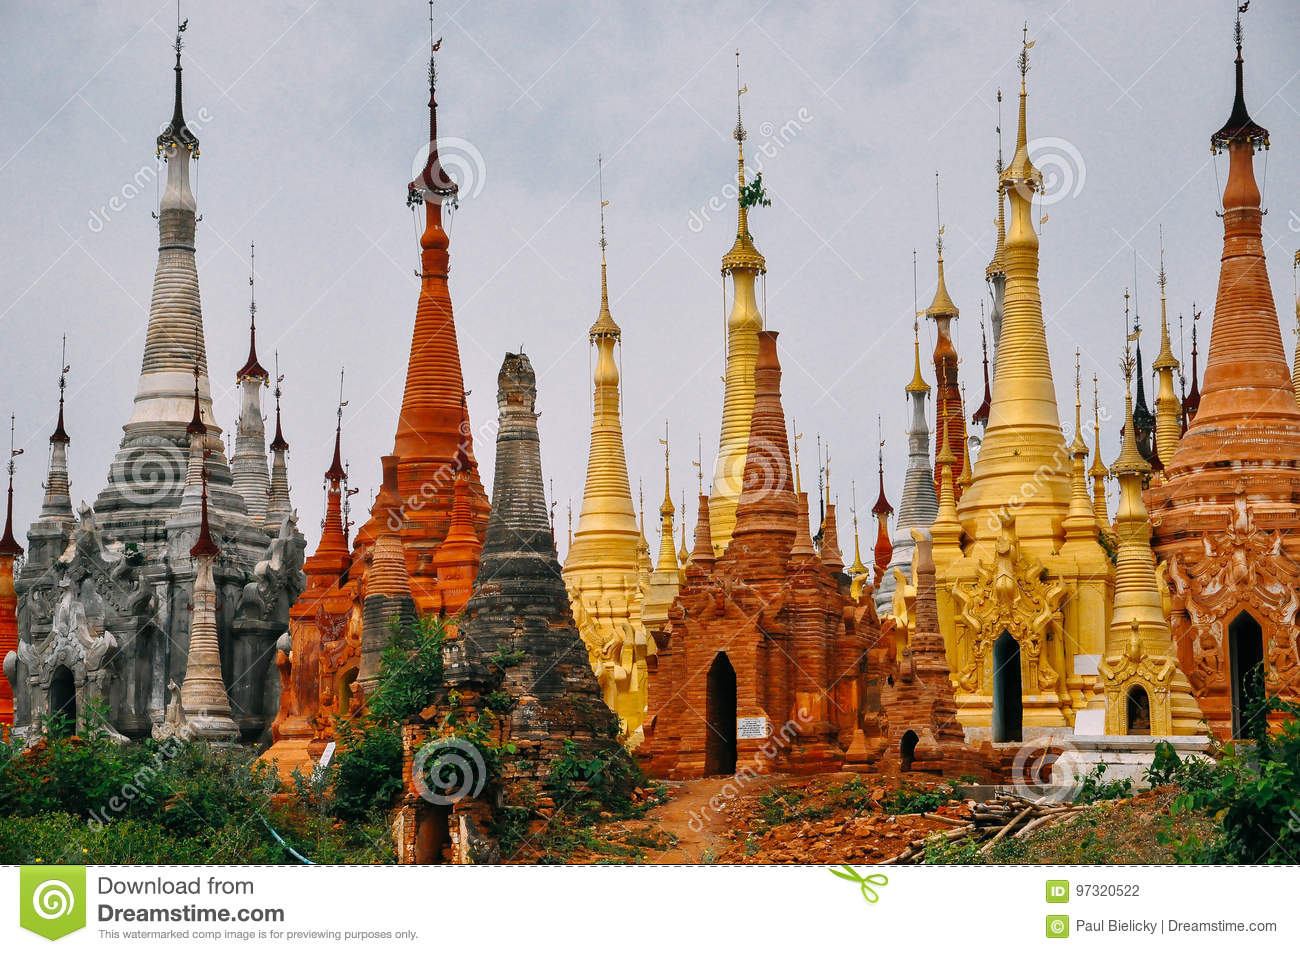 Colorful pagodas in Indein village at Inle lake.